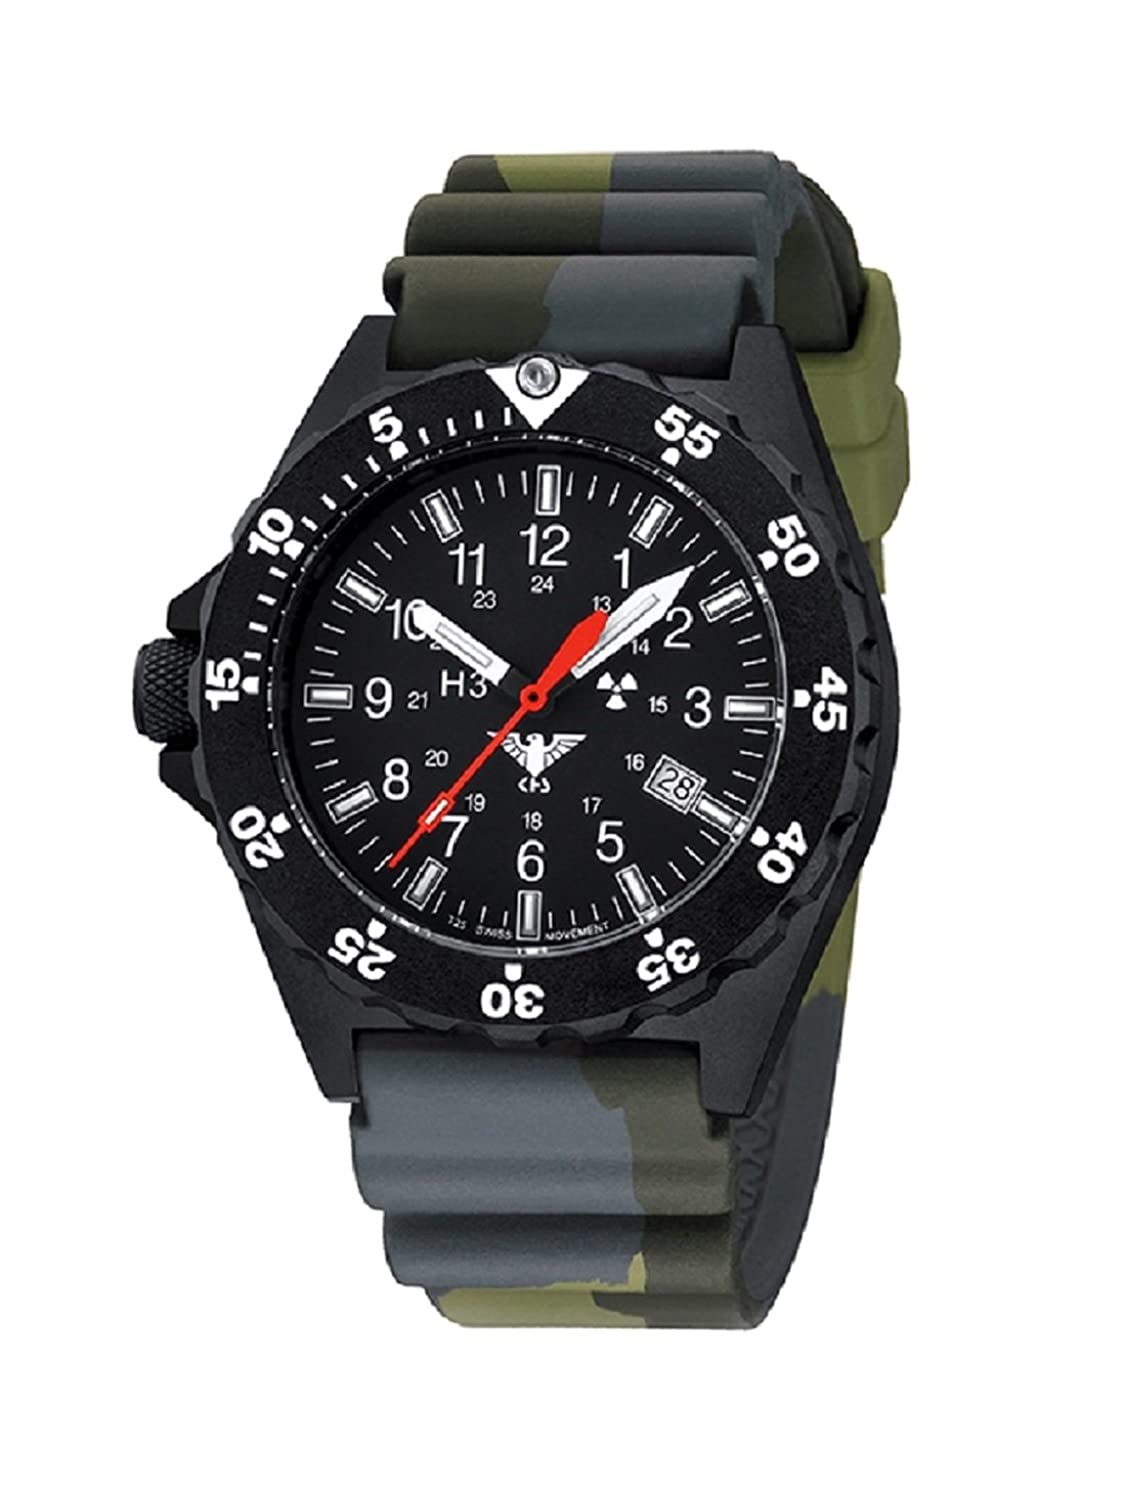 KHS Shooter KHS.SH.DC3 Diverband Camouflage Oliv inkl. Watch-Glass-Protection Schutzfolie